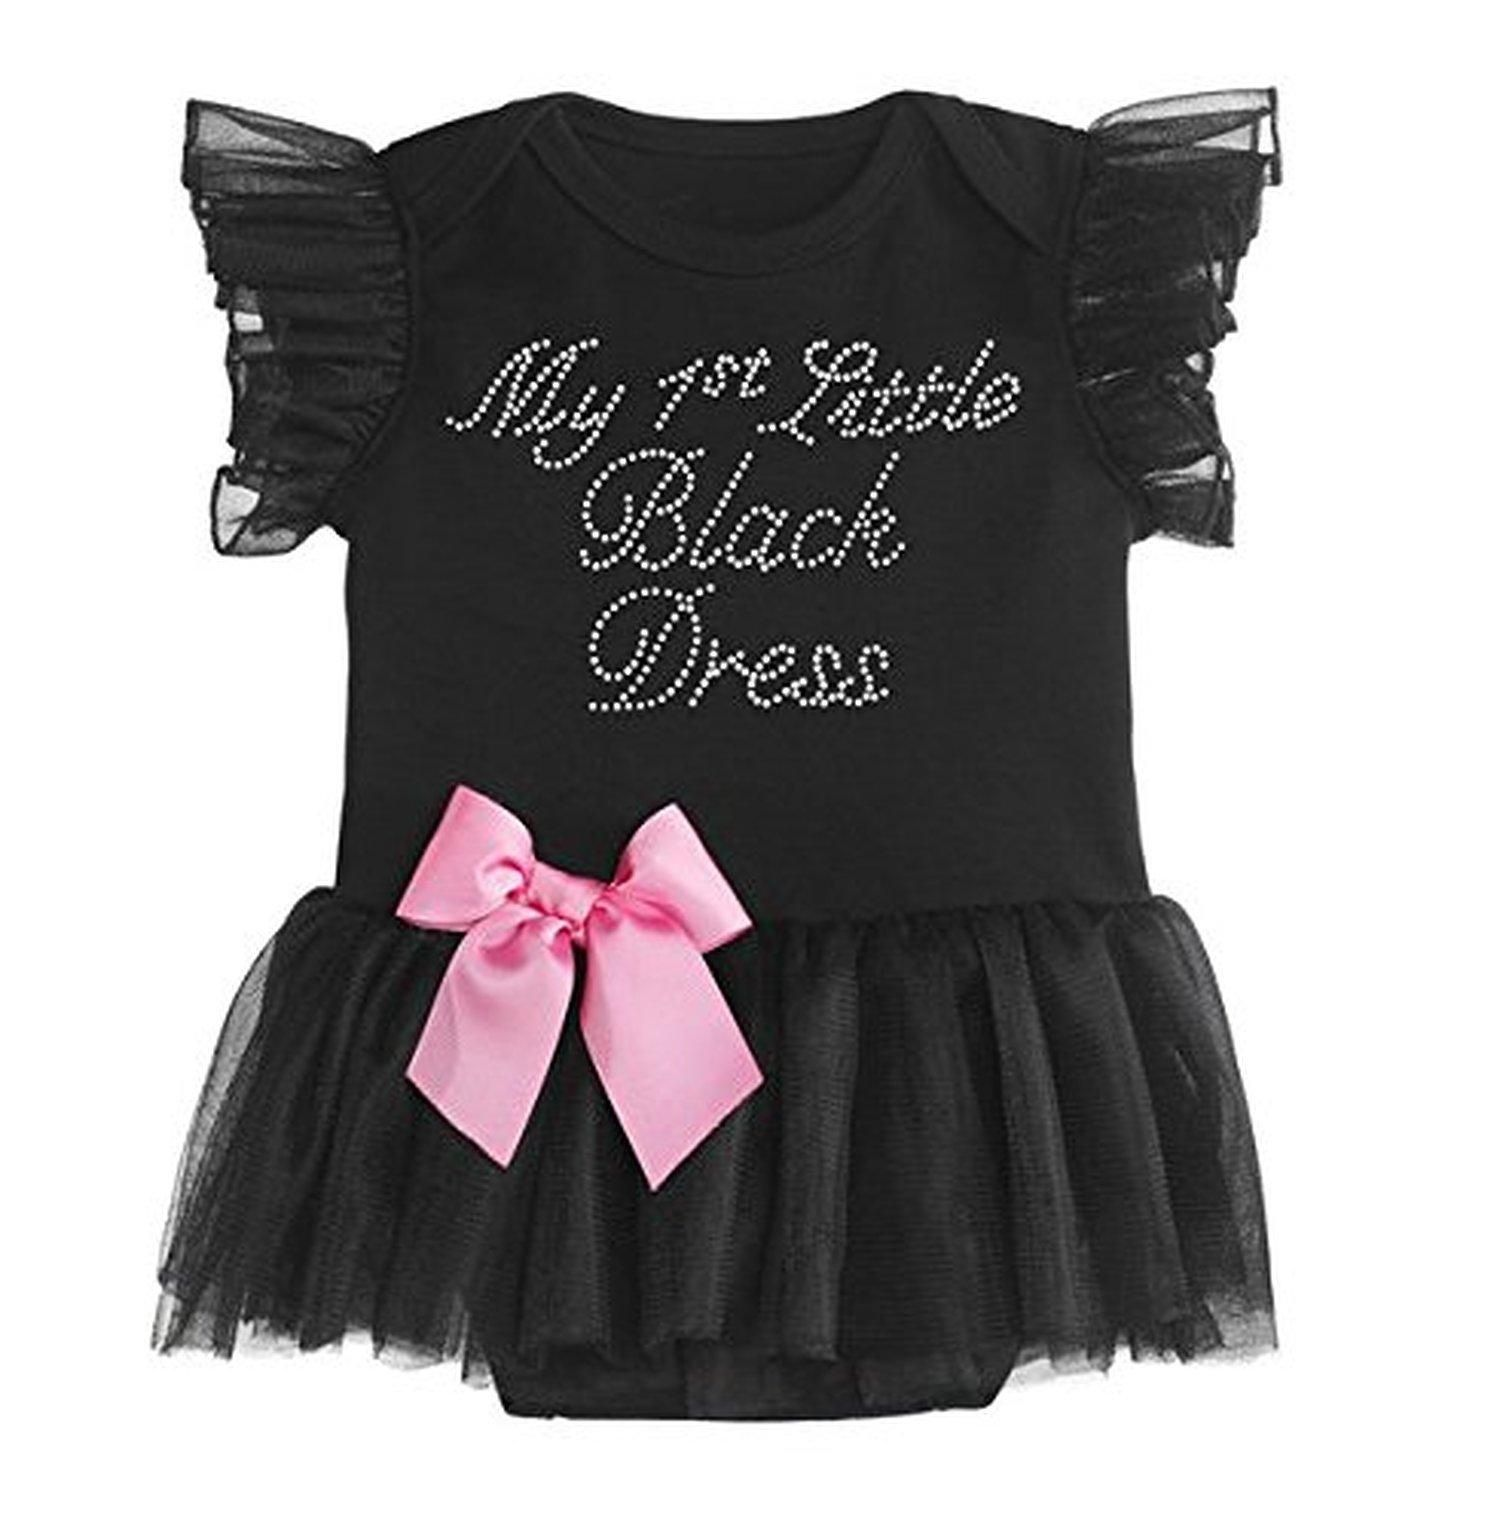 Ganz My 1st Little Black Dress 0 6 Months Brought to you by